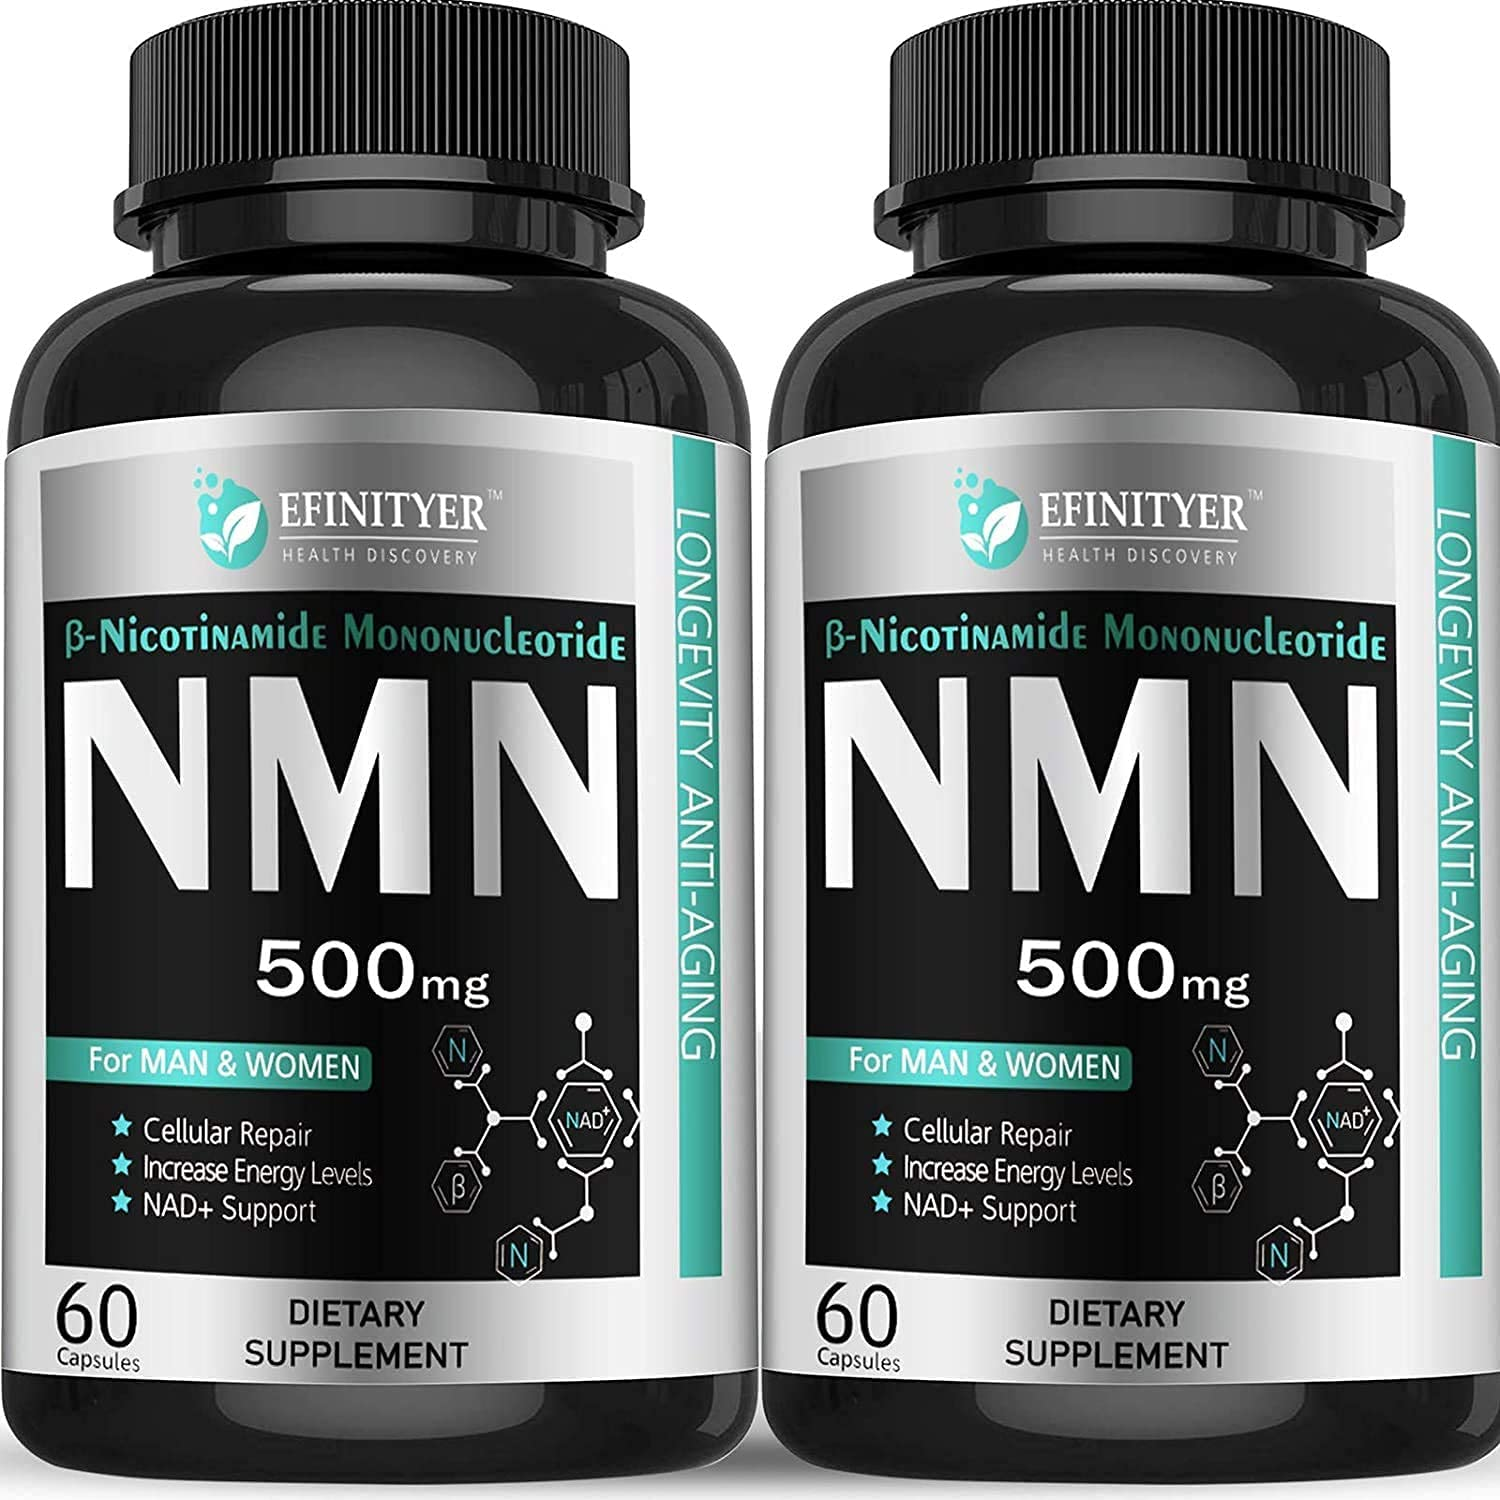 security Pack of Max 89% OFF 2 NMN Supplement Mononucleotide Per Nicotinamide 500mg